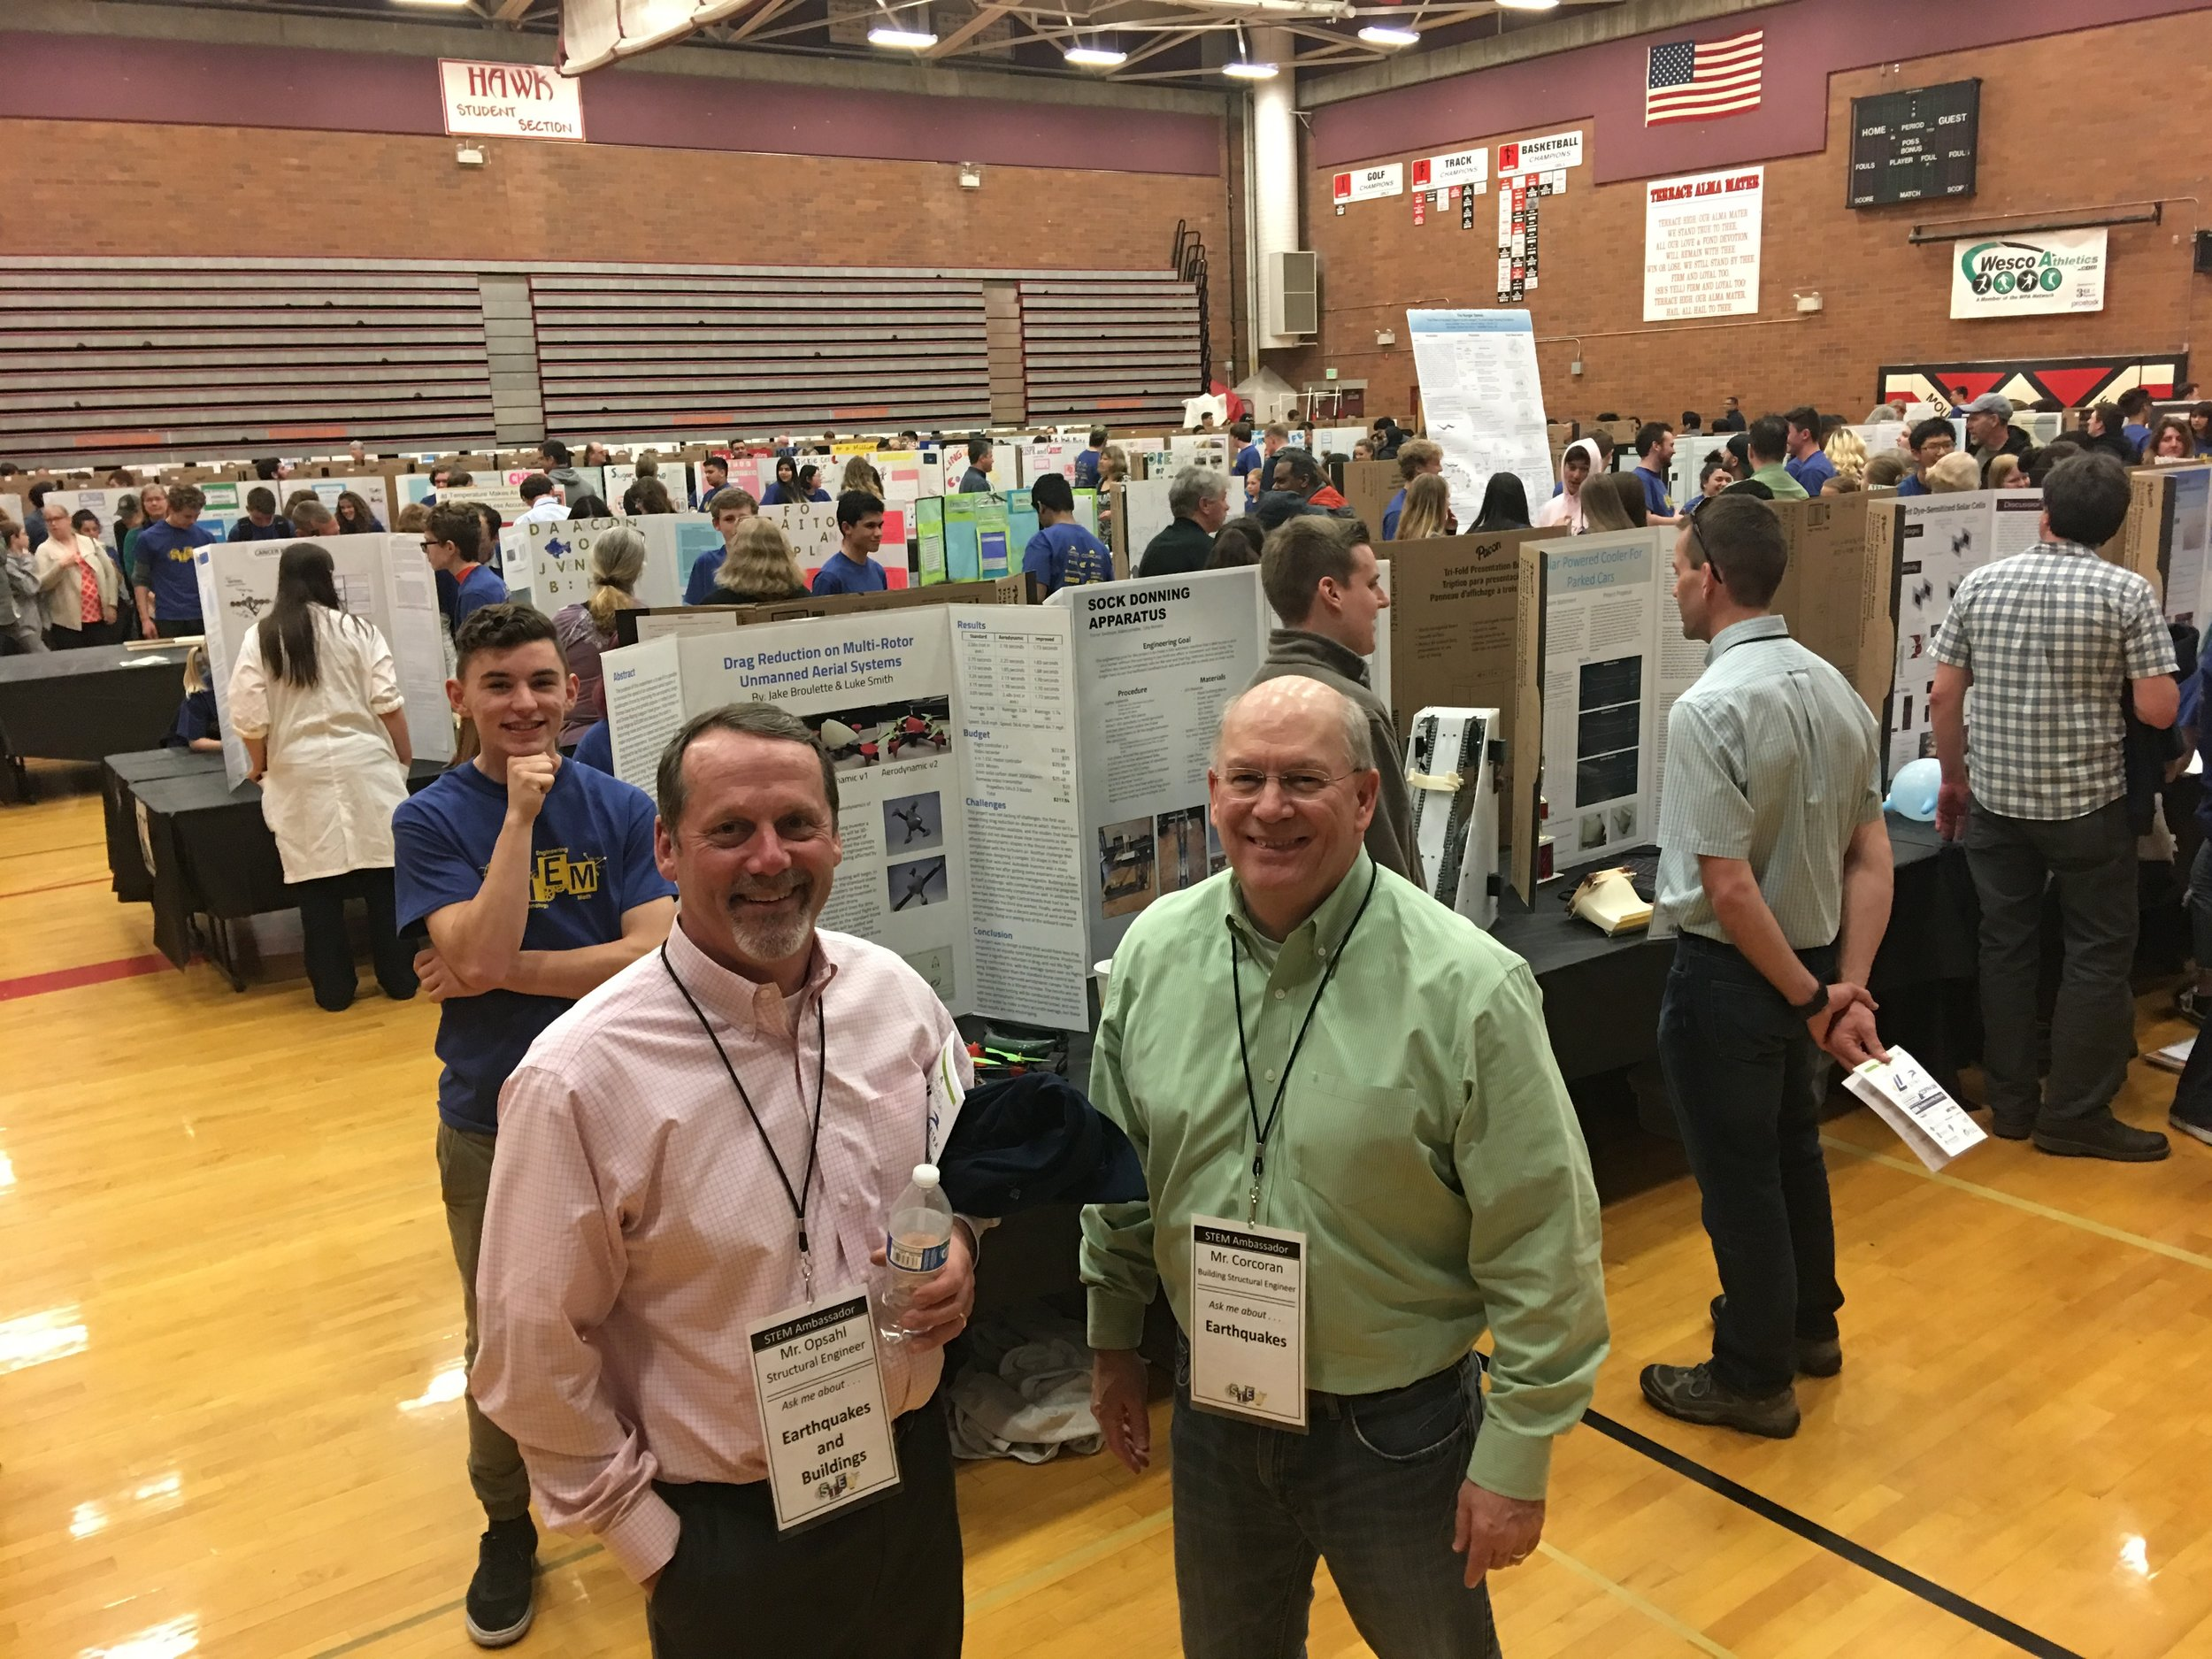 SEAW Outreach Committee members, Pete Opsahl and Tom Corcoran, take a quick break for a photo.